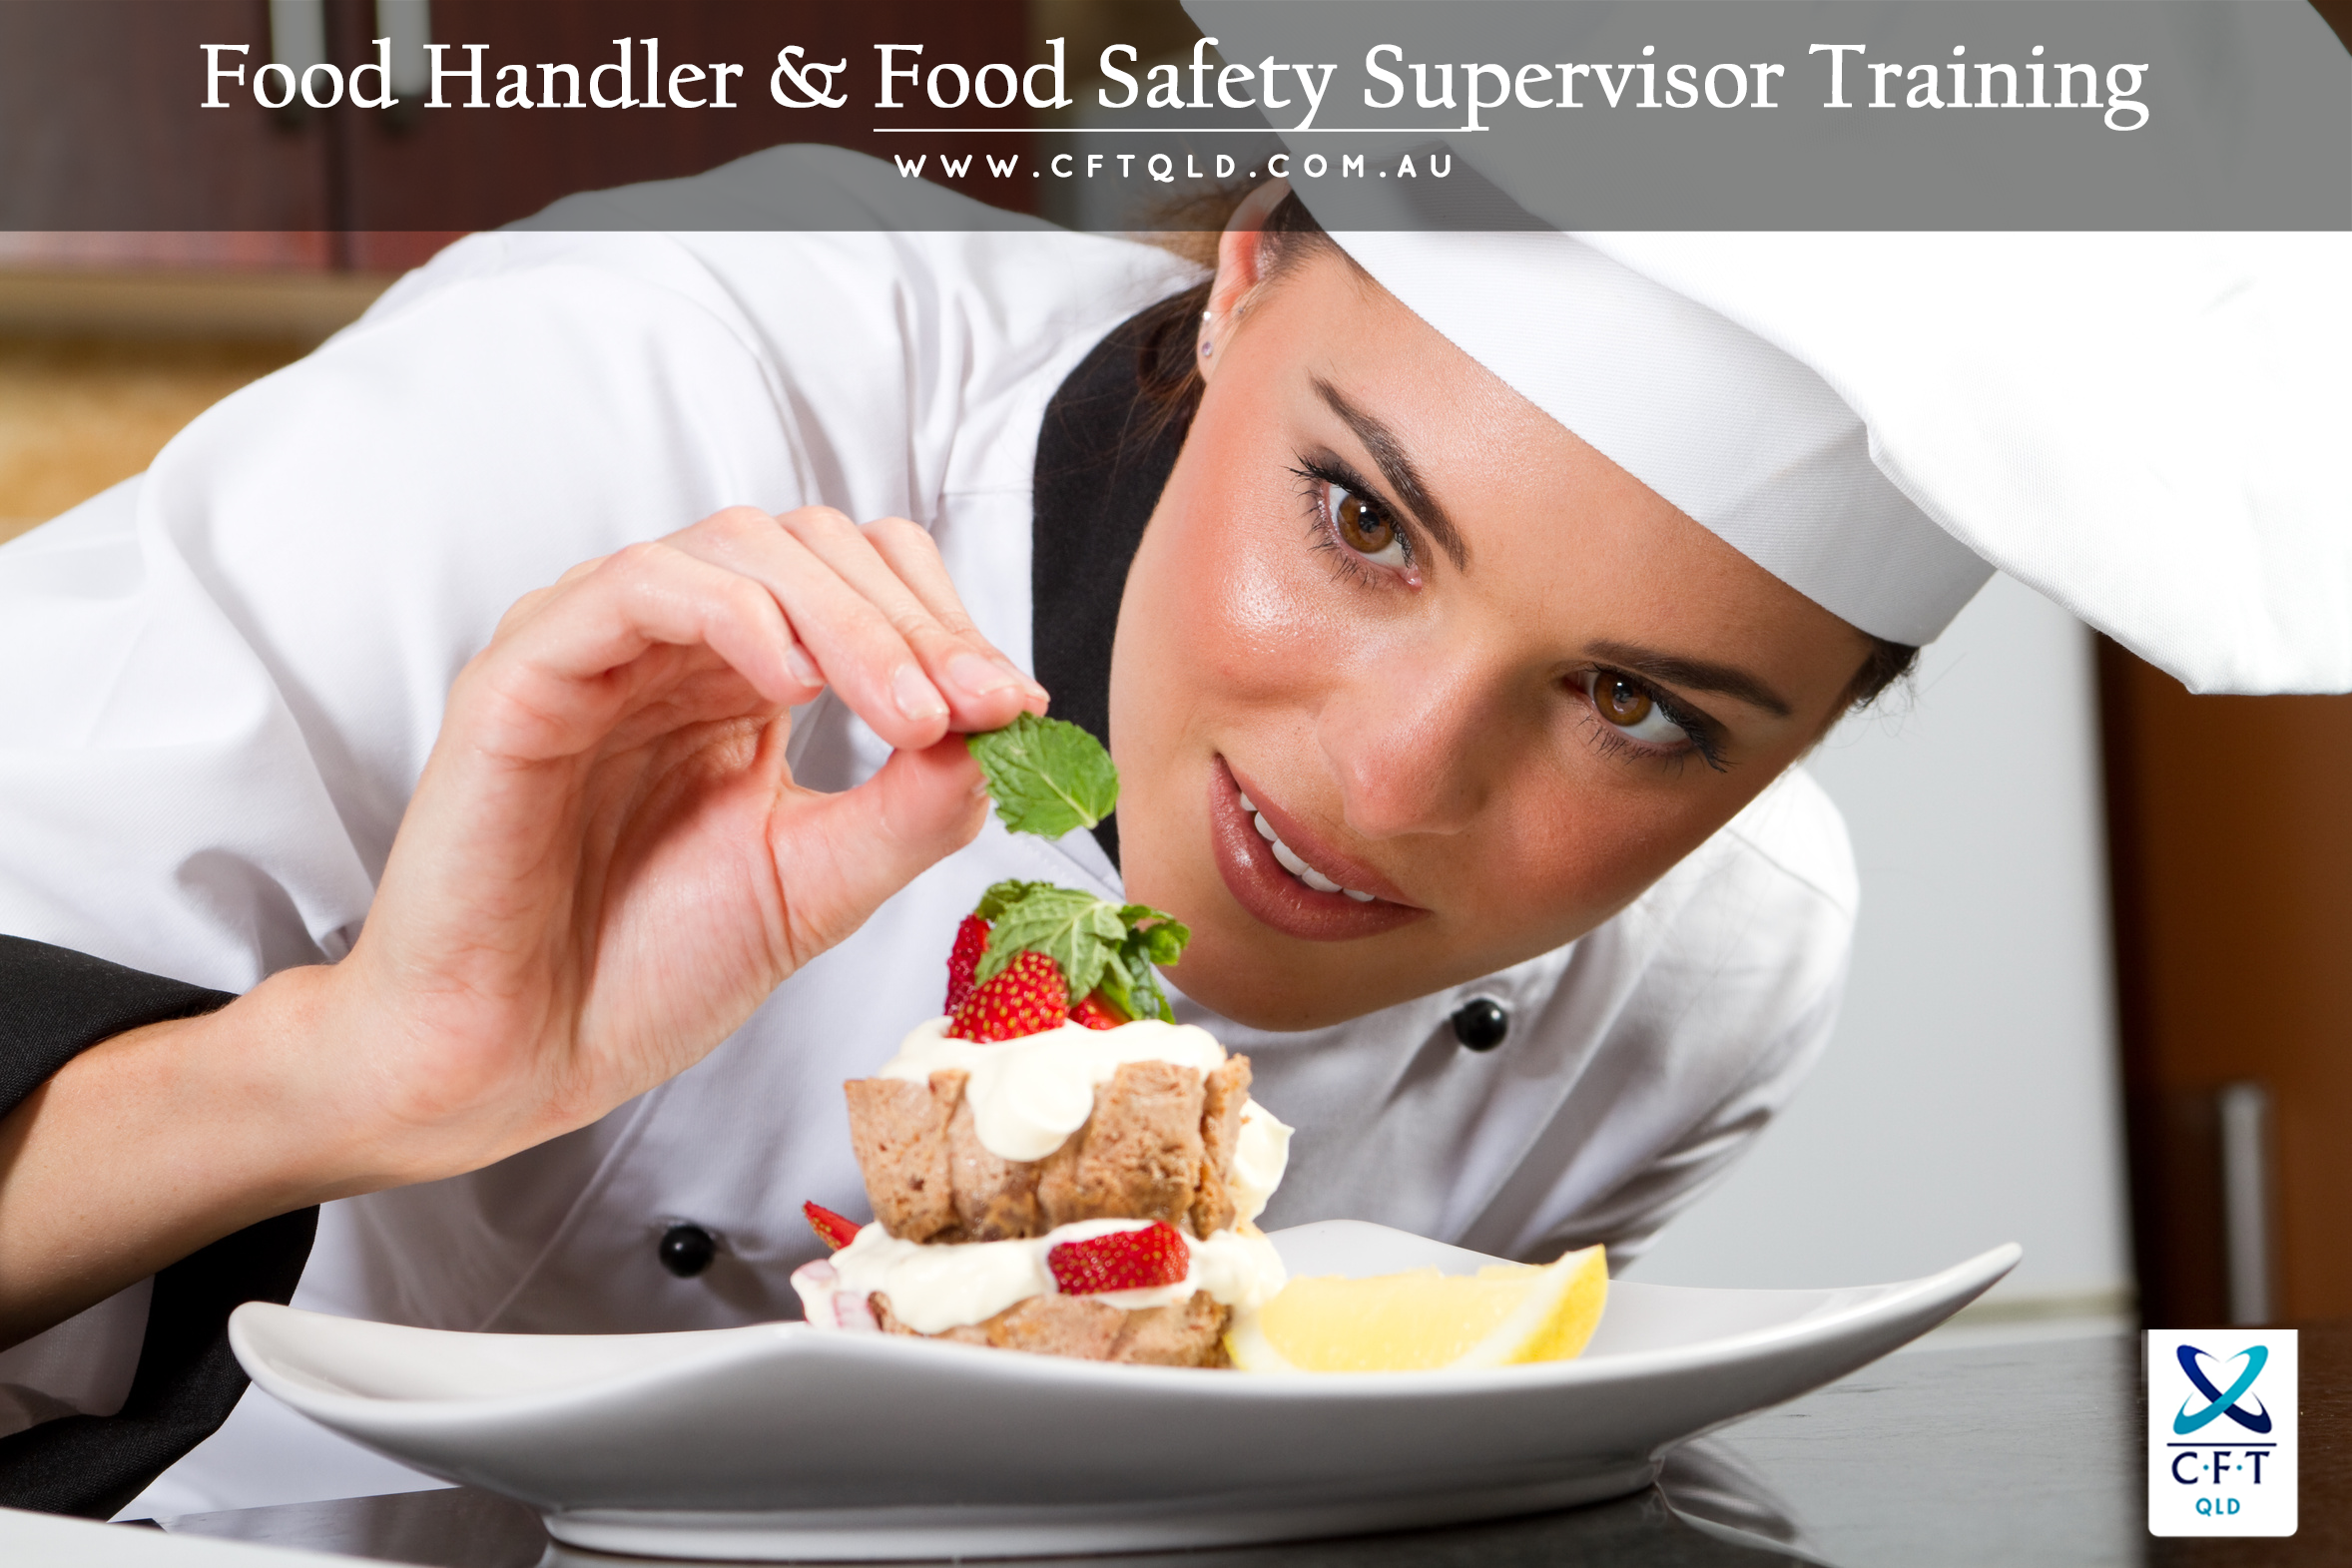 Online Food Safety Training Courses In Australia CFT QLD